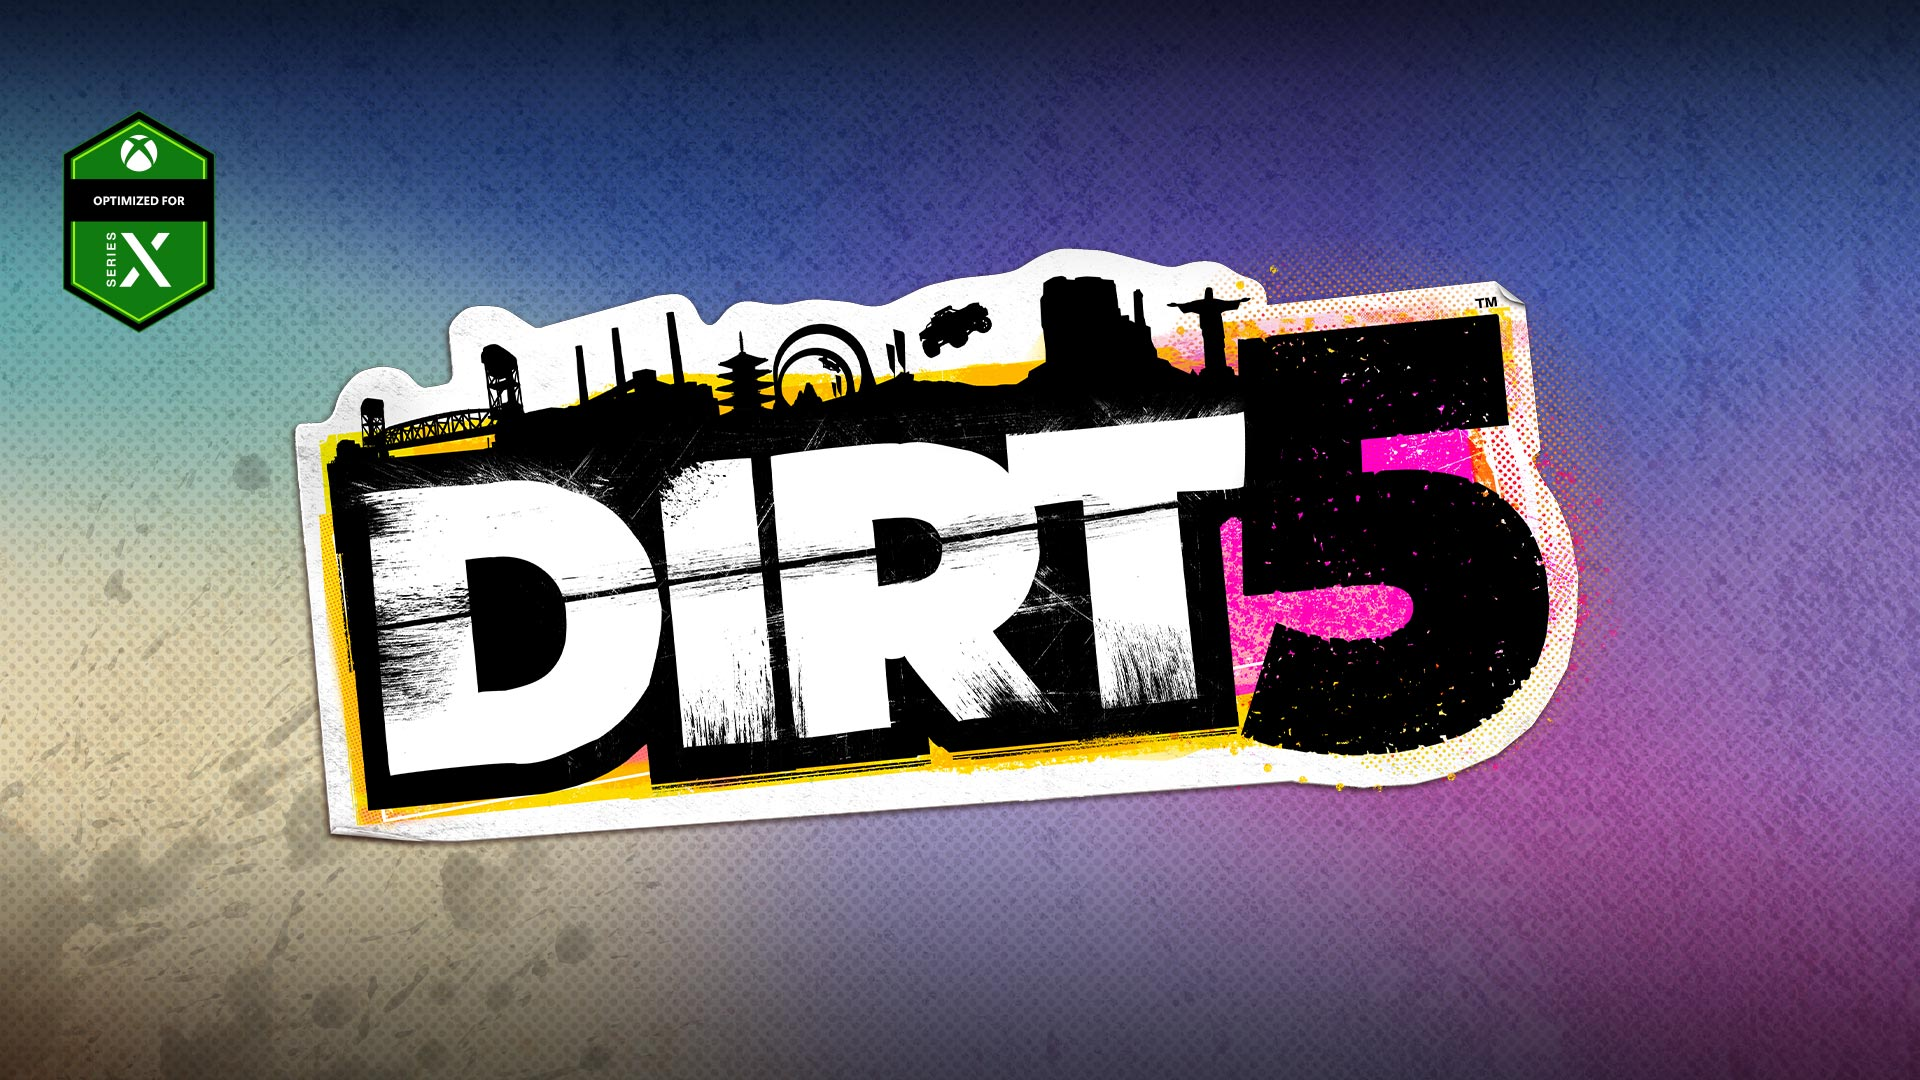 Optimized for Series X logo, DIRT 5 logo on a colorful background